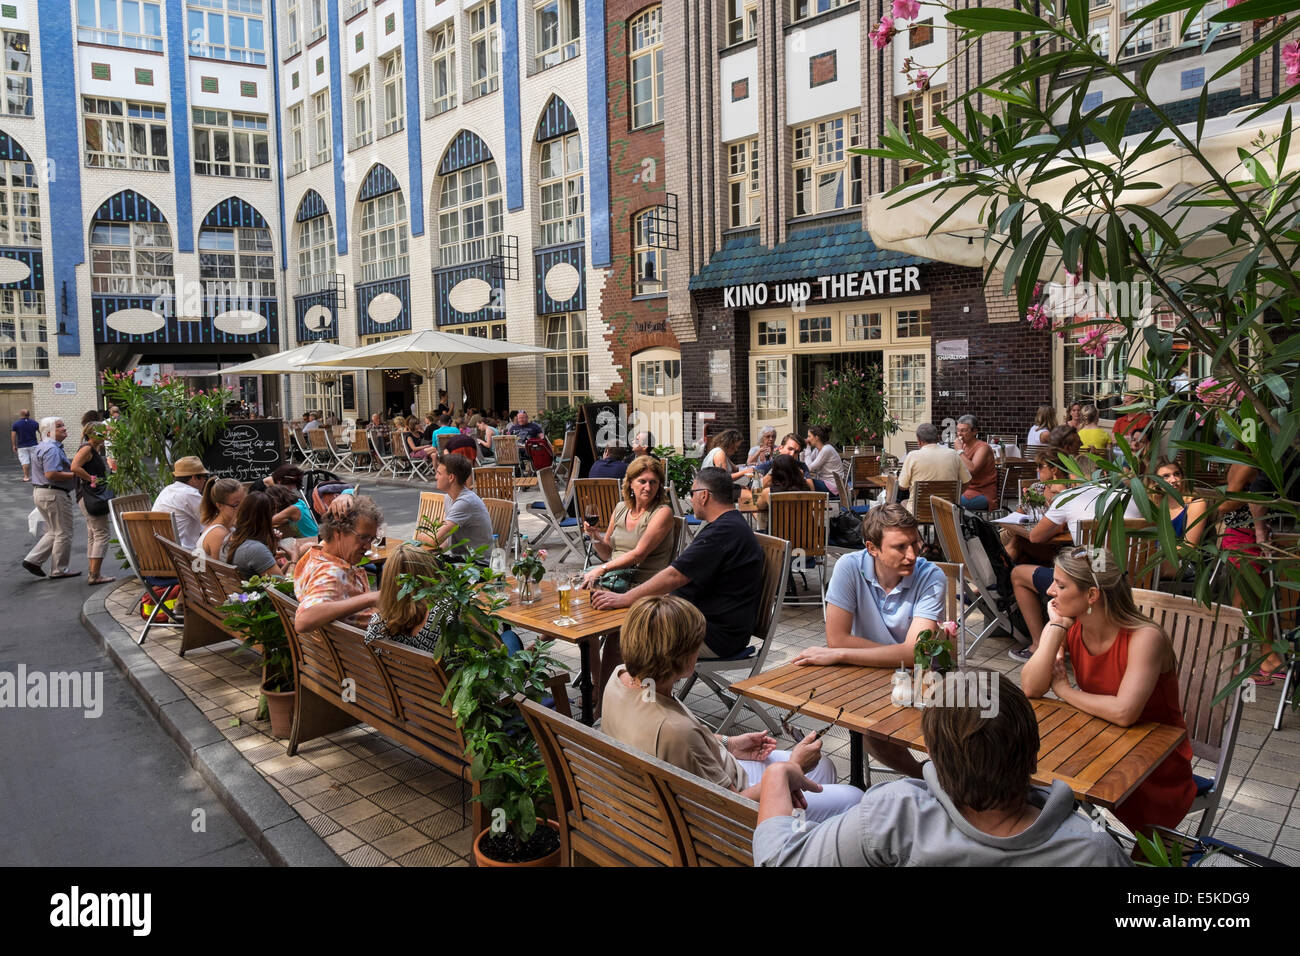 busy cafe in courtyard at historic hackescher markt in mitte berlin stock photo 72342489 alamy. Black Bedroom Furniture Sets. Home Design Ideas